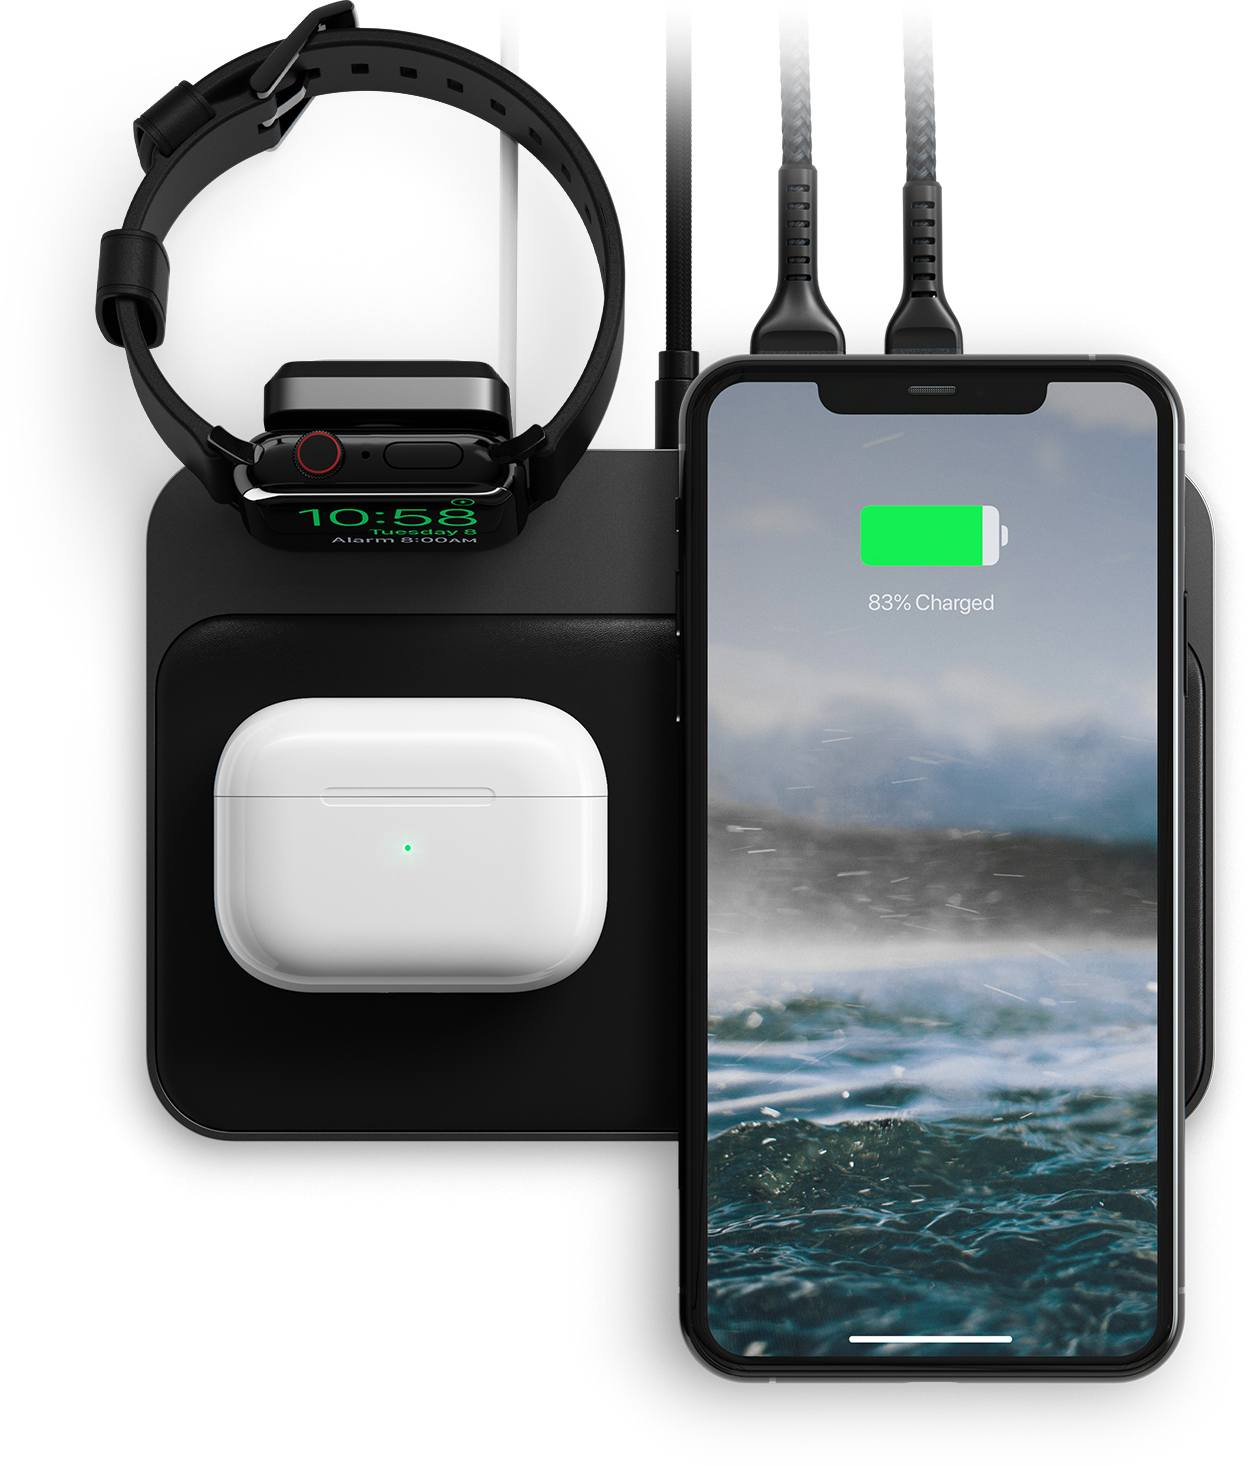 https://cdn.shopify.com/s/files/1/0384/6721/files/856500018997_Feature_3_-_AW_iPhone_AirPods_Cables_-_White.jpg?v=1590524364